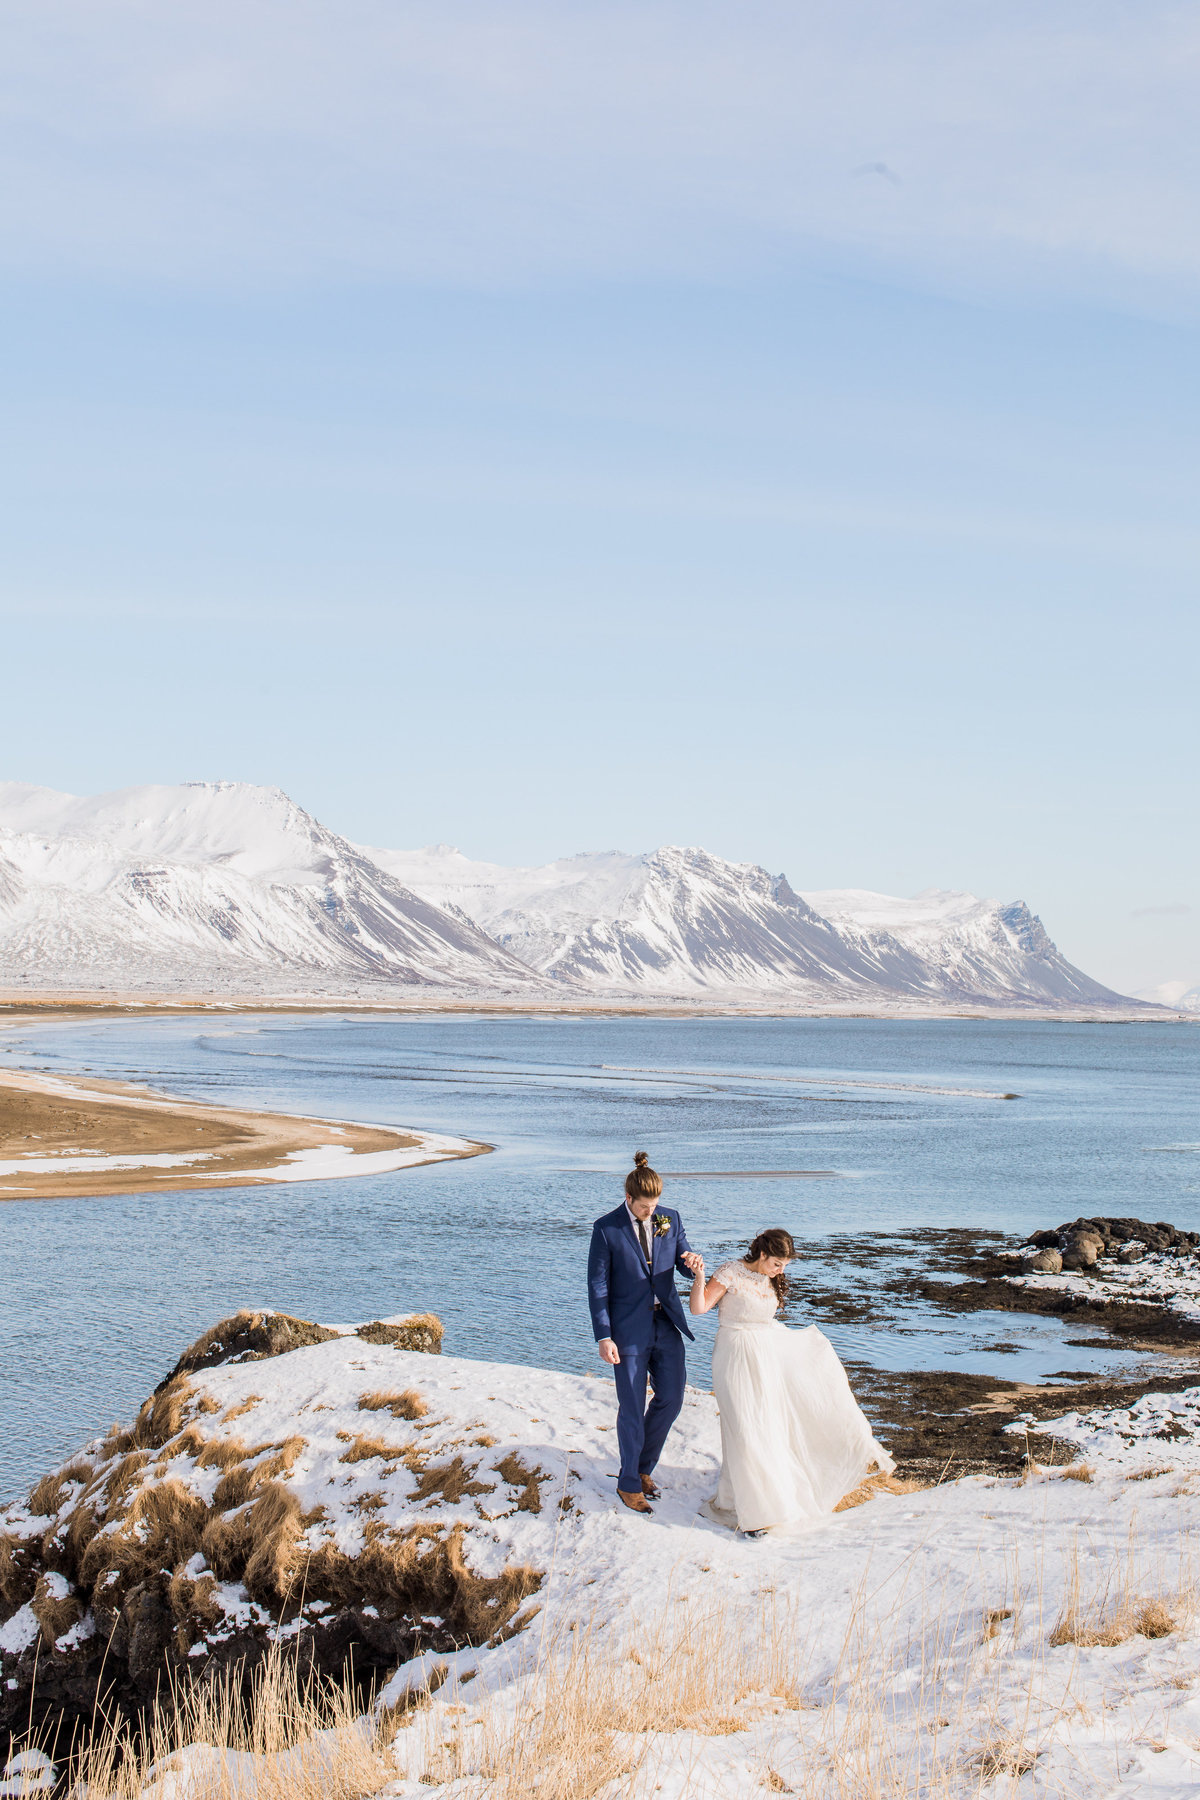 IcelandWedding_OliviaScott_CatherineRhodesPhotography-641-Edit